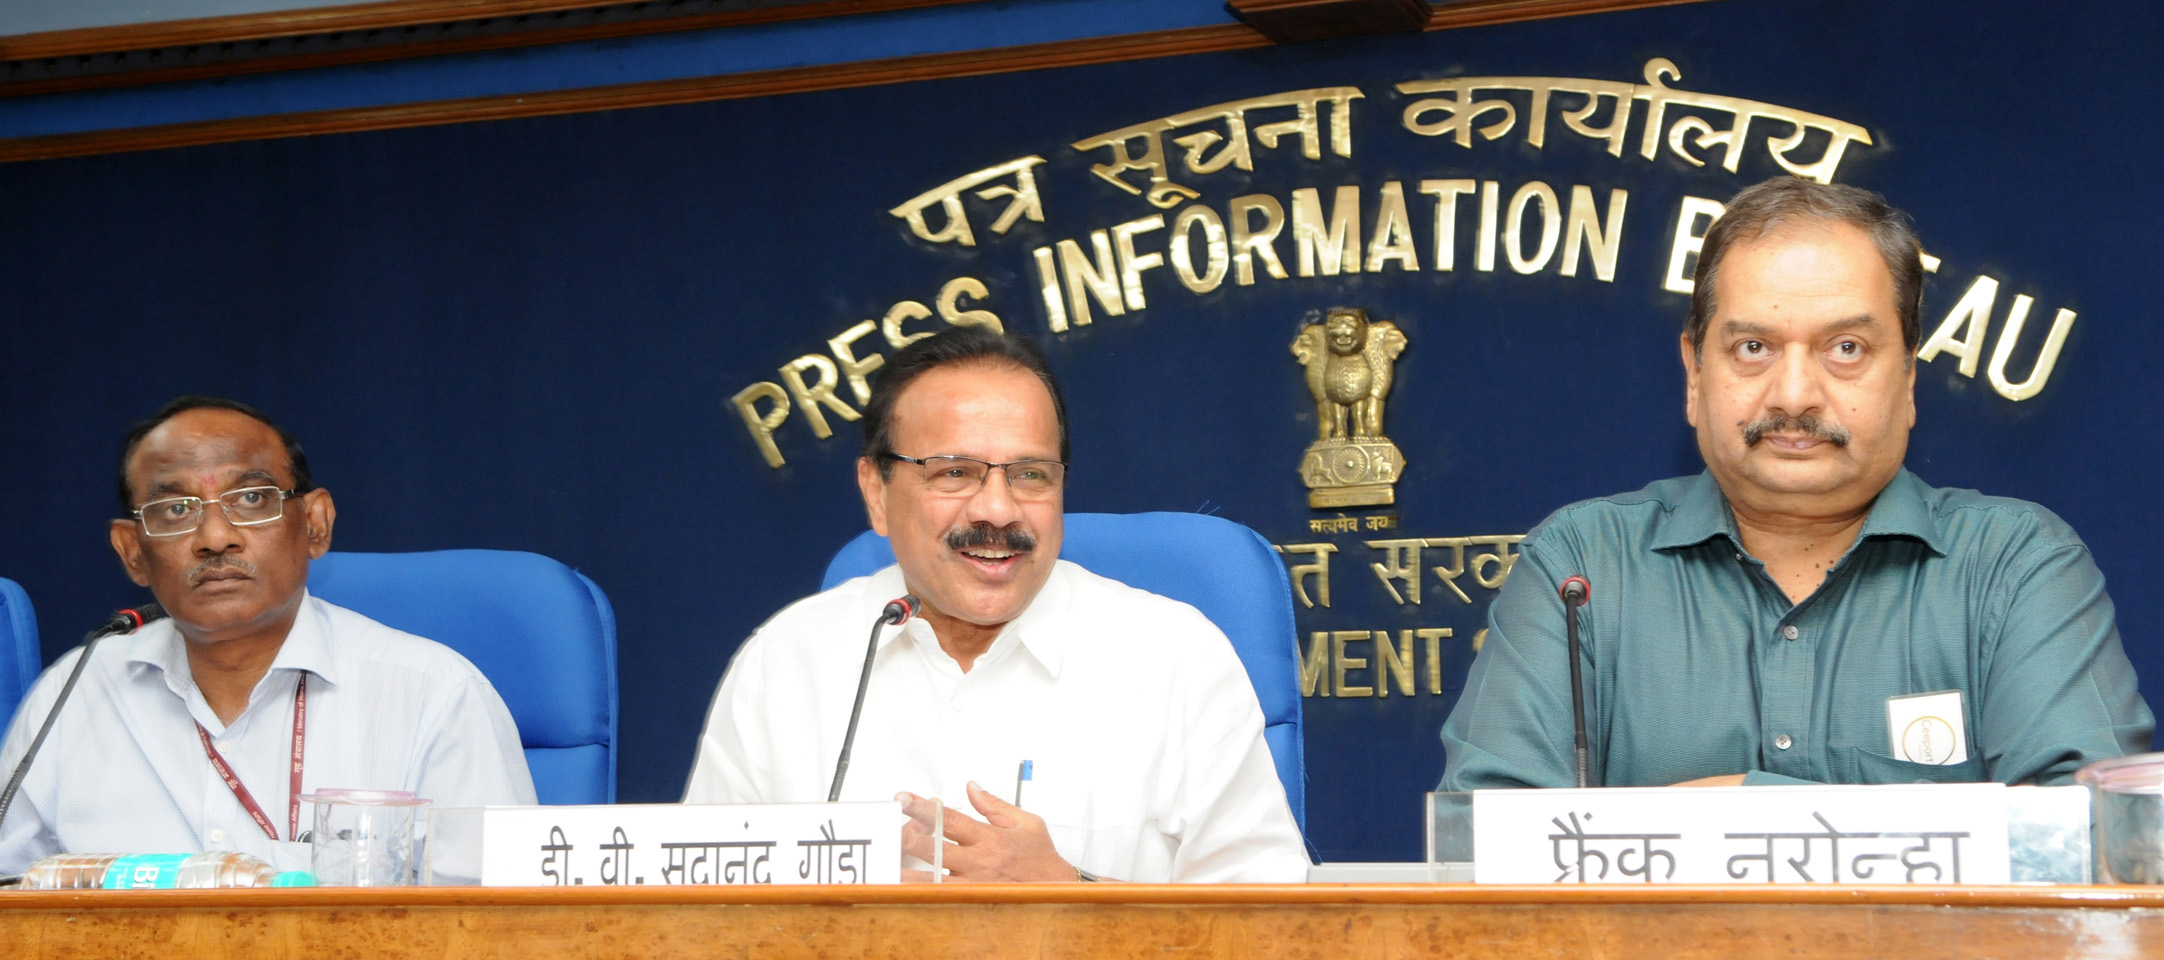 The Union Minister for Law & Justice, Shri D.V. Sadananda Gowda addressing a press conference to mark the completion of two years of the Government, in New Delhi on May 25, 2016. 	The Secretary, Legislative Department of the Ministry of Law and Justice, Dr. G. Narayana Raju and the Director General (M&C), Press Information Bureau, Shri A.P. Frank Noronha are also seen.